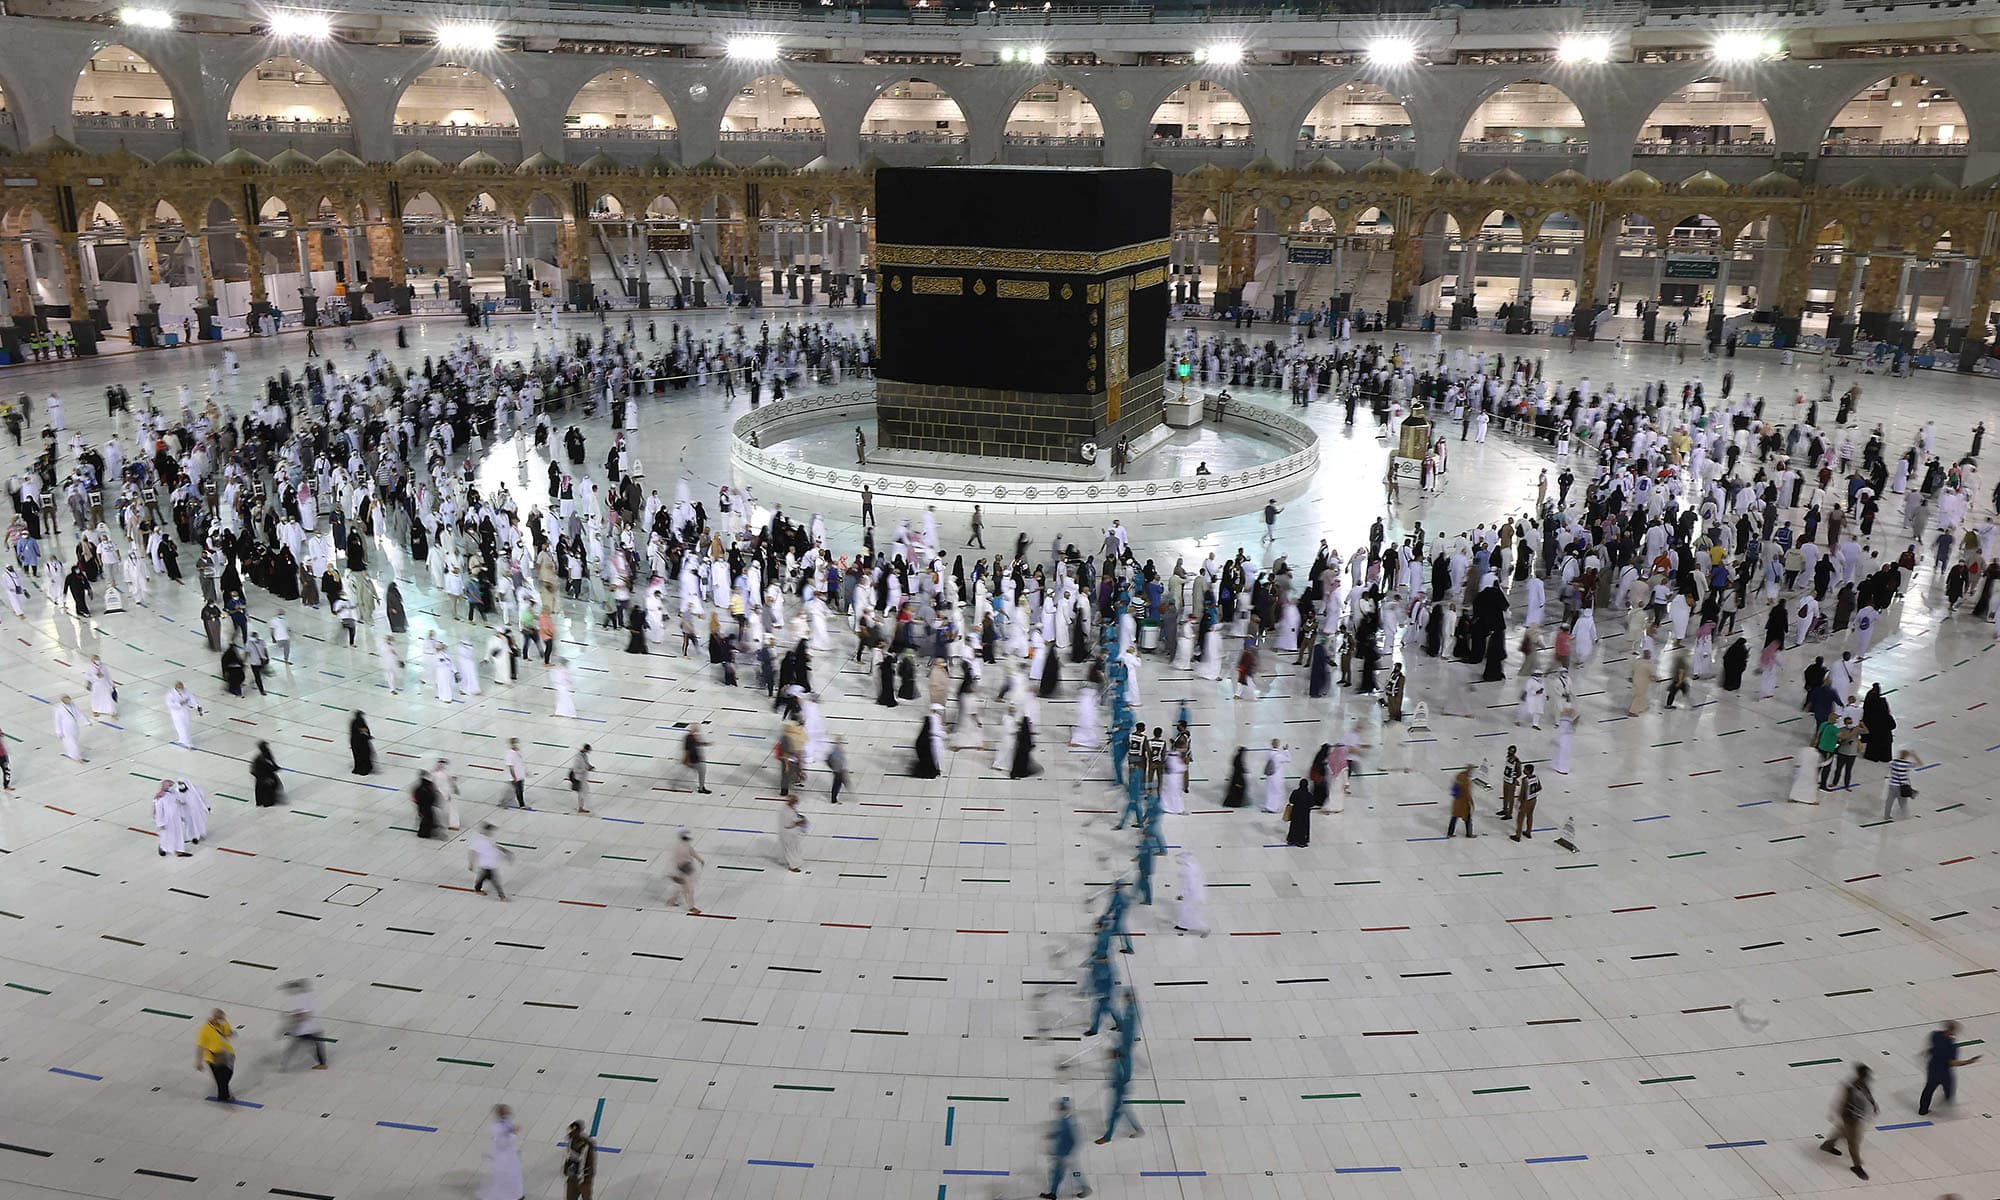 """Worshippers pray around the Kaaba, Islam's holiest shrine, at the Grand mosque in the holy Saudi city of Mecca, on the first day of the al-Adha feast celebrated by Muslims worldwide, on July 20, 2021. - The Eid al-Adha, or """"Feast of Sacrifice"""", marks the end of the annual pilgrimage or Hajj to the Saudi holy city of Mecca and is celebrated in remembrance of Abraham's readiness to sacrifice his son to God. (Photo by Fayez Nureldine / AFP)"""